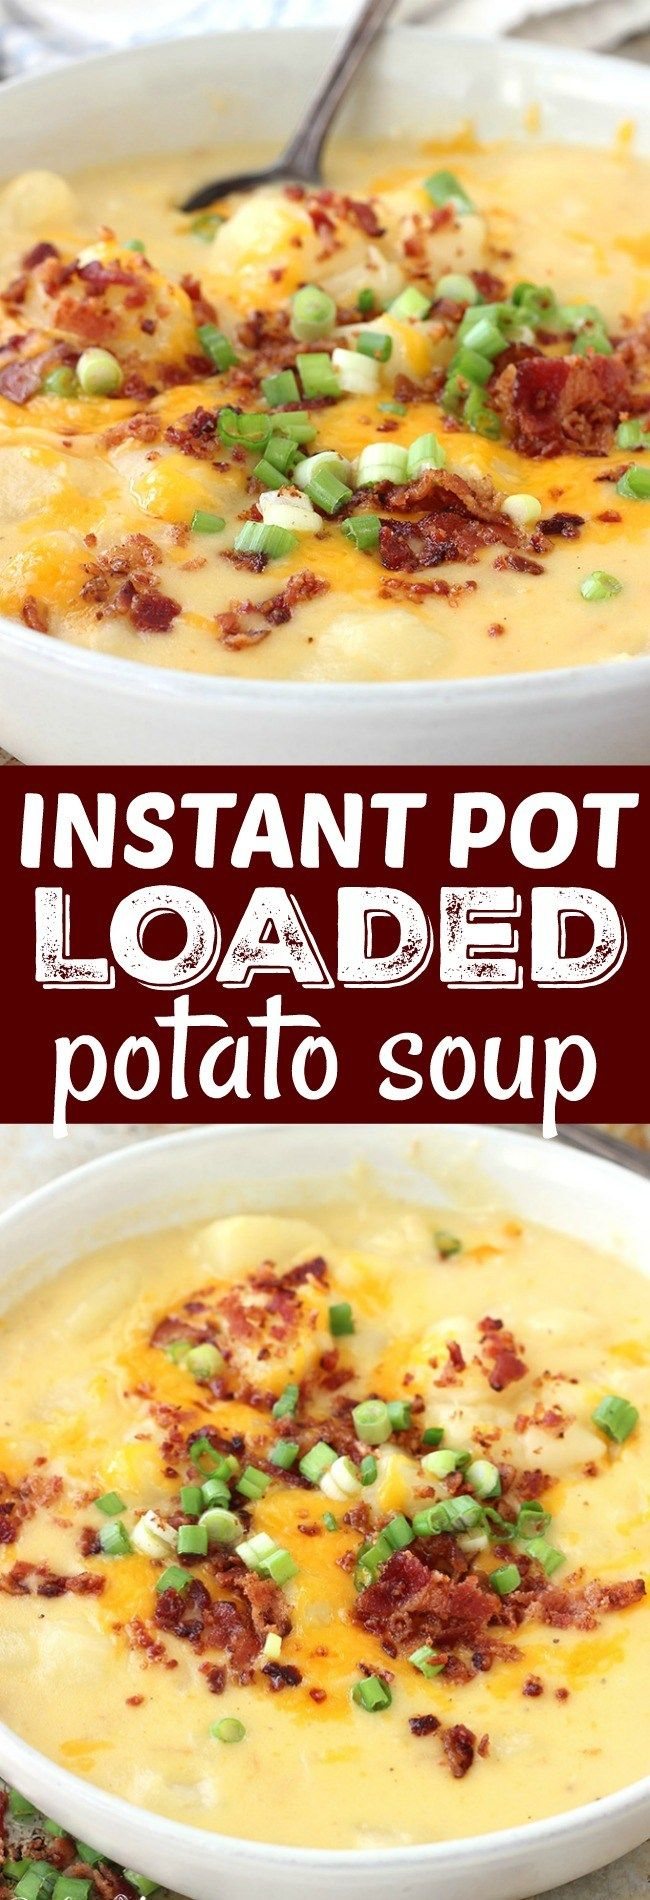 Pot Potate Loaded Instant Potato (avec une version mijoteuse)